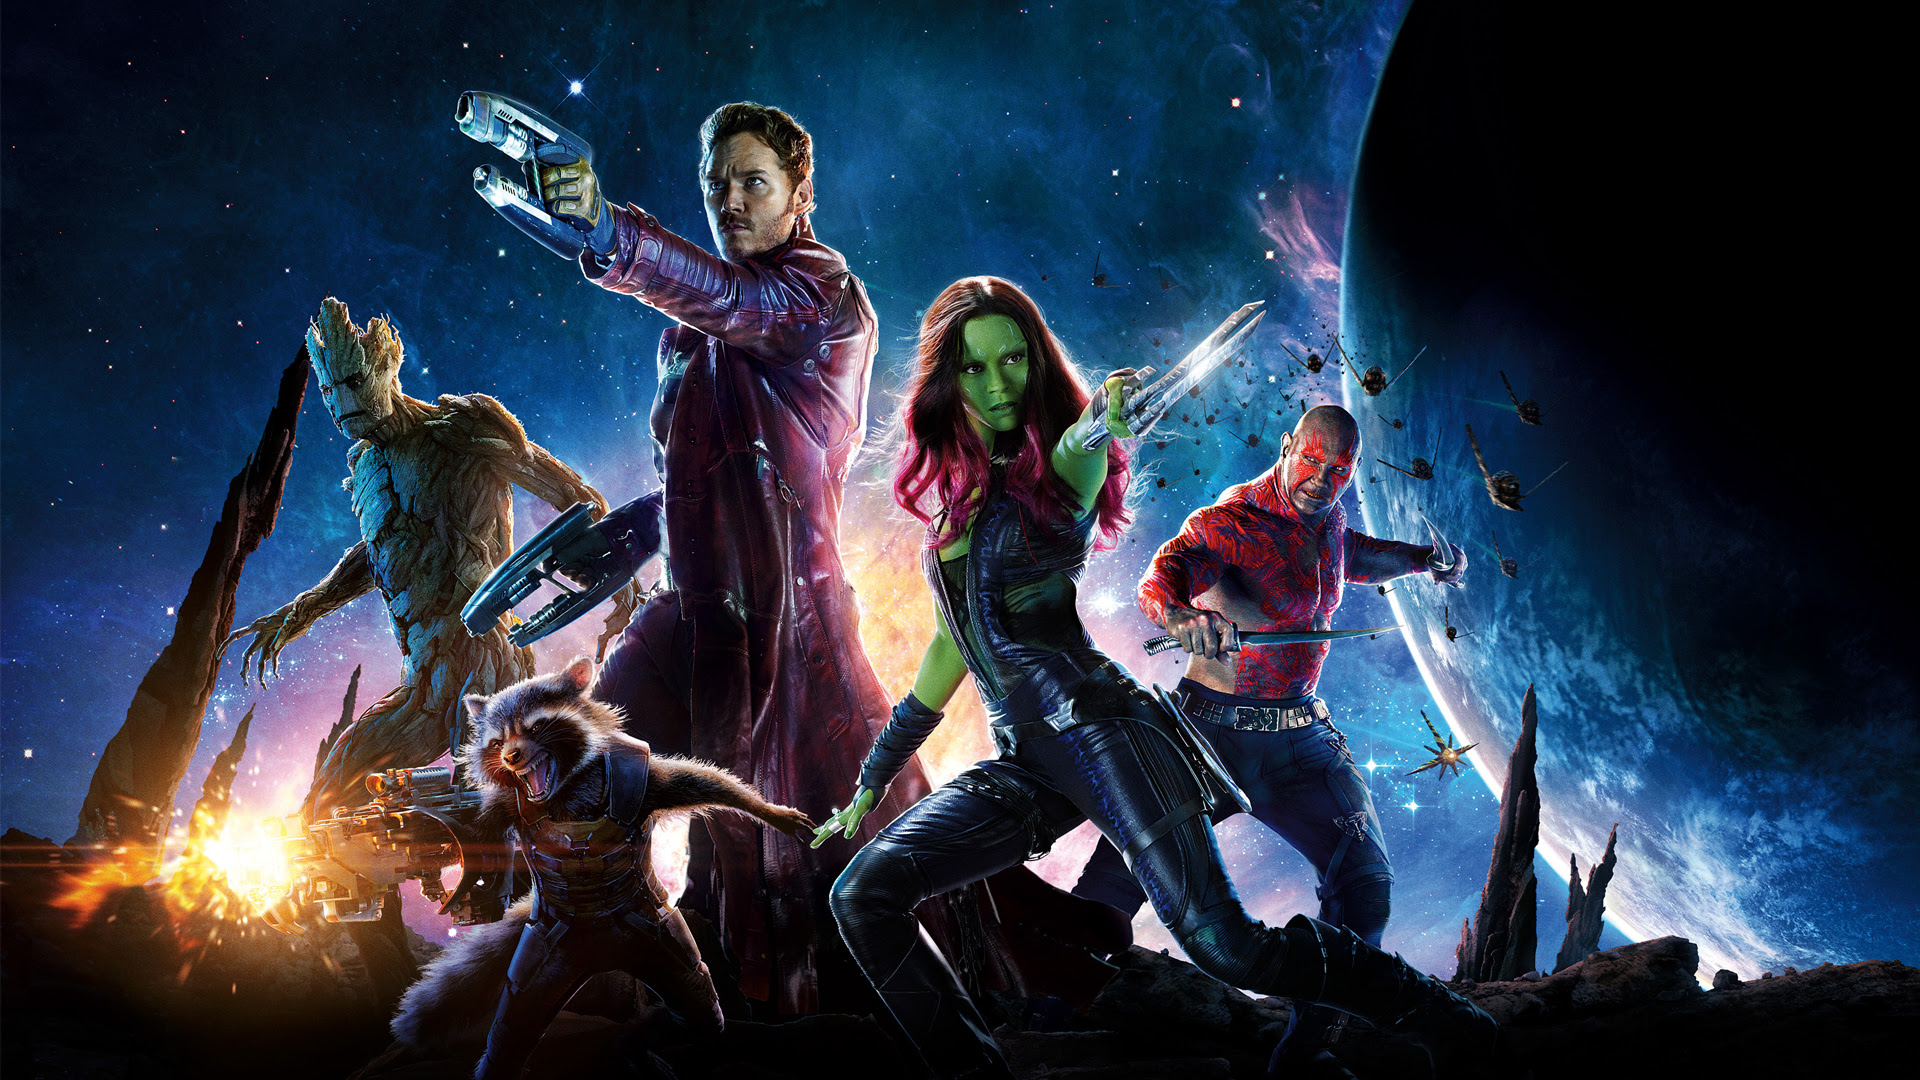 http://justtegan.com/wp-content/uploads/2014/08/guardians_of_the_galaxy_wallpaper_1920x1080_by_sachso74-d7ng2pv.jpg